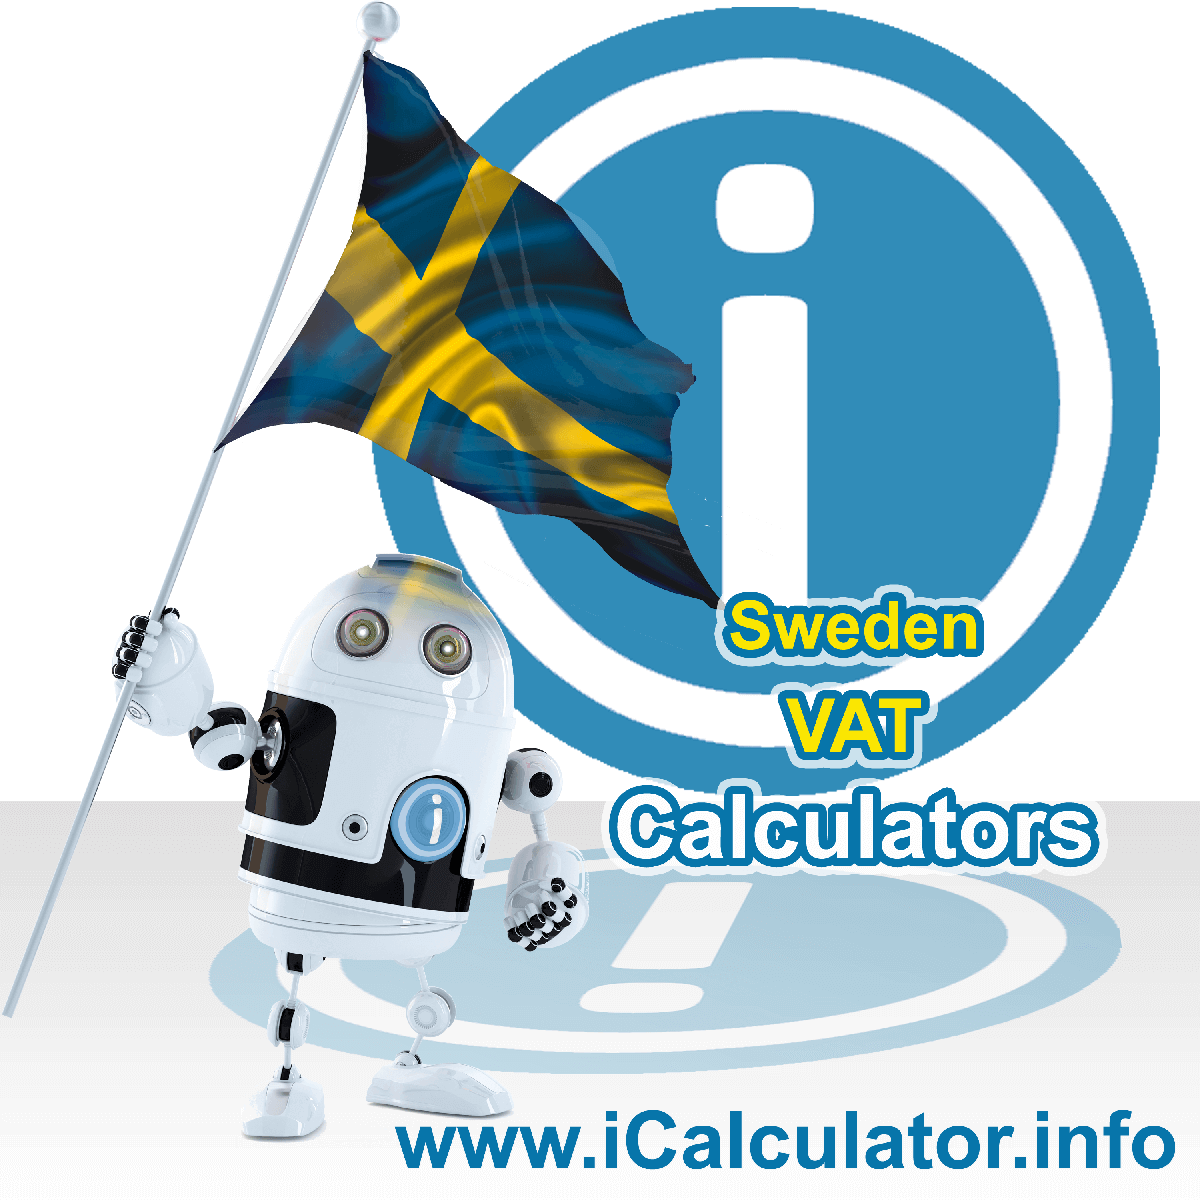 Sweden VAT Calculator. This image shows the Sweden flag and information relating to the VAT formula used for calculating Value Added Tax in Sweden using the Sweden VAT Calculator in 2021